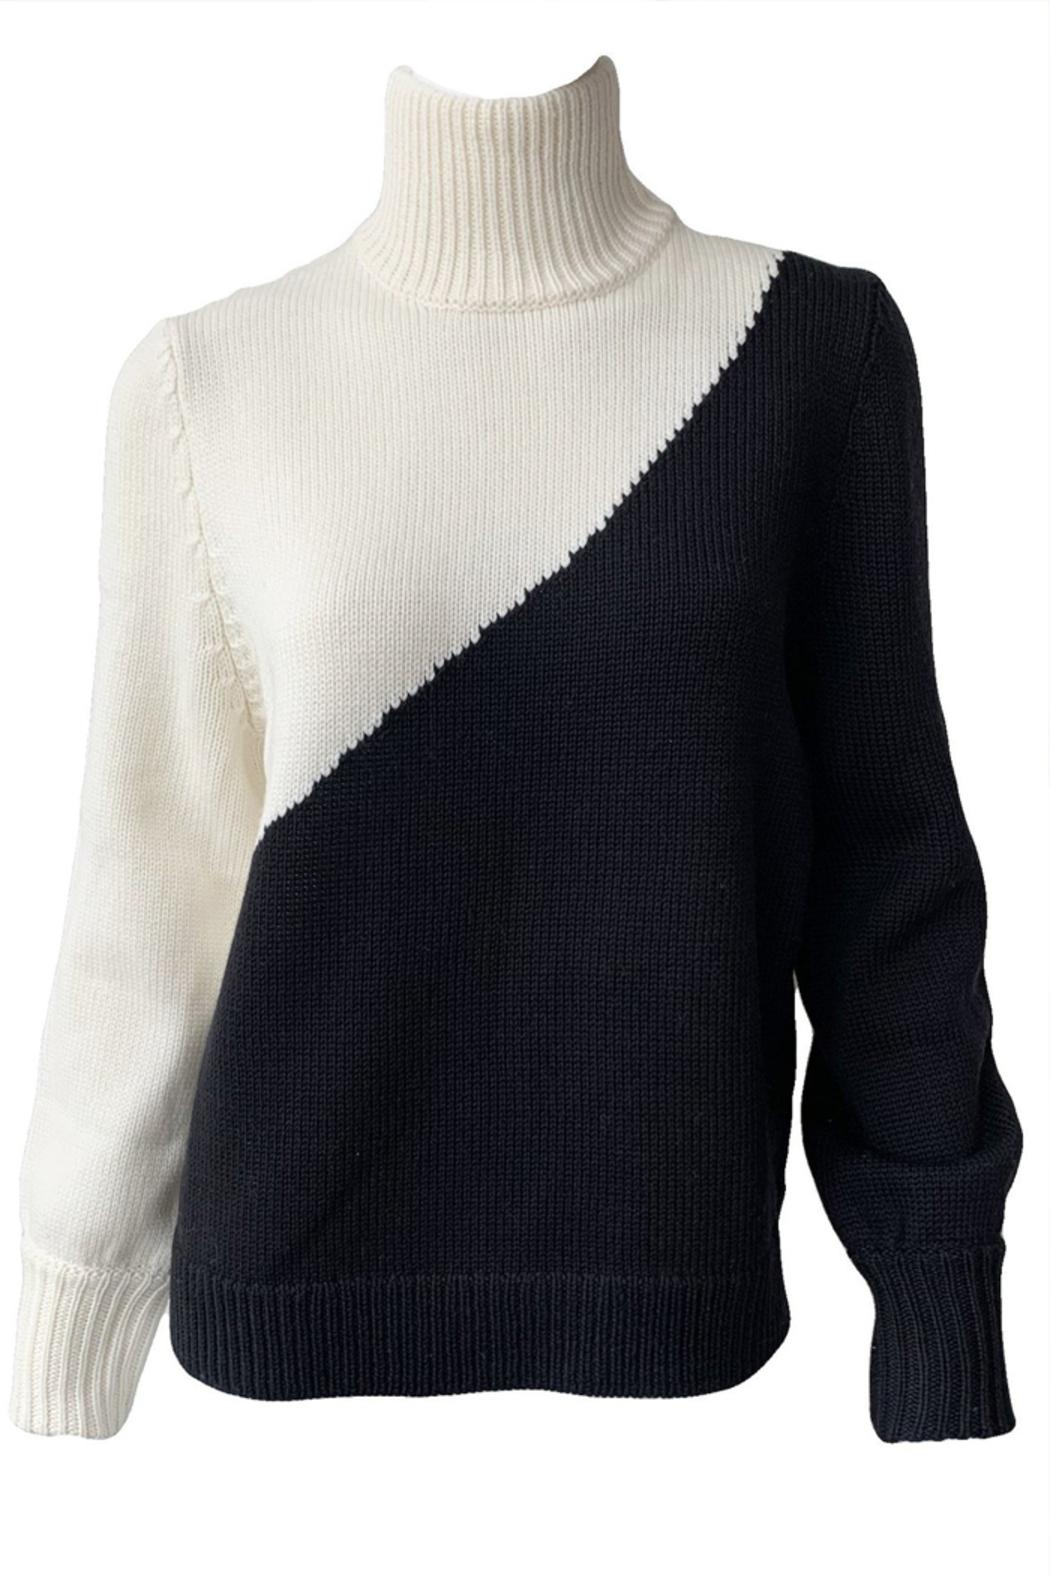 Emerson Fry Mila Colorblock Merino Wool Sweater - Back Cropped Image